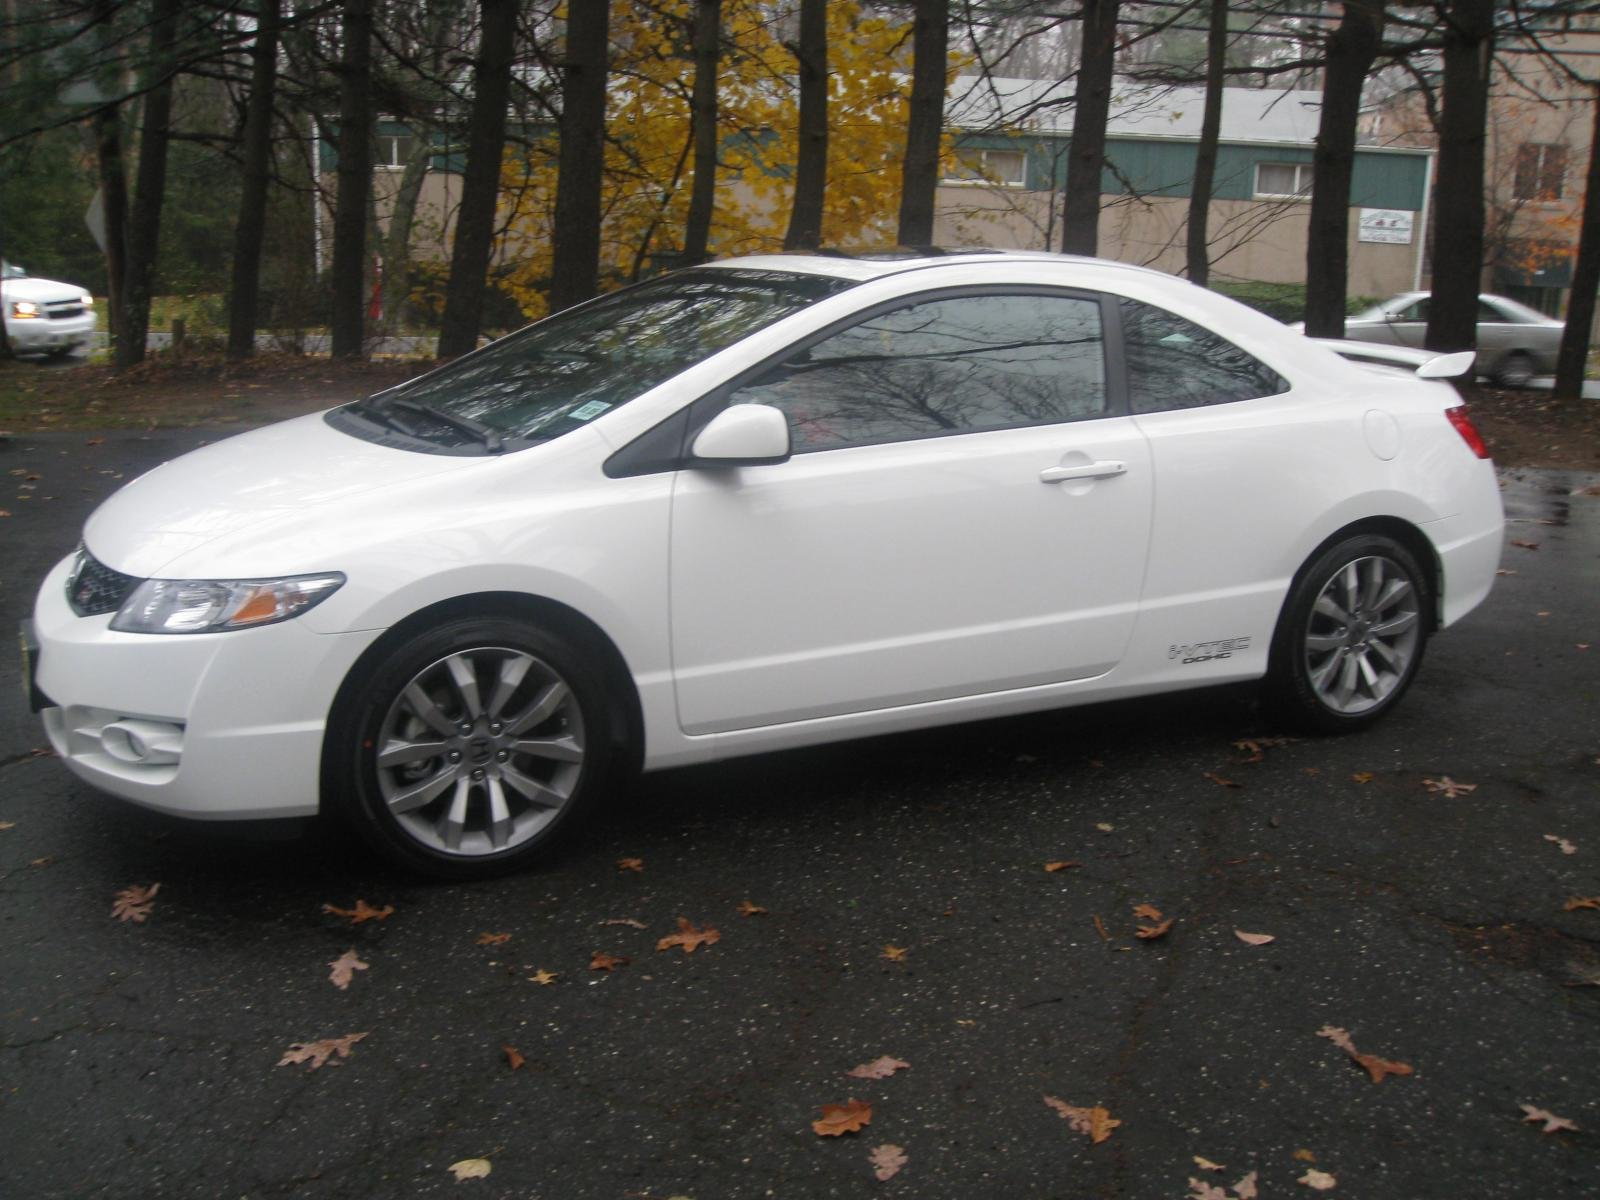 2011 Honda Civic Coupe Calling All 2011 Civic Si Coupe Owners 8th Generation Honda